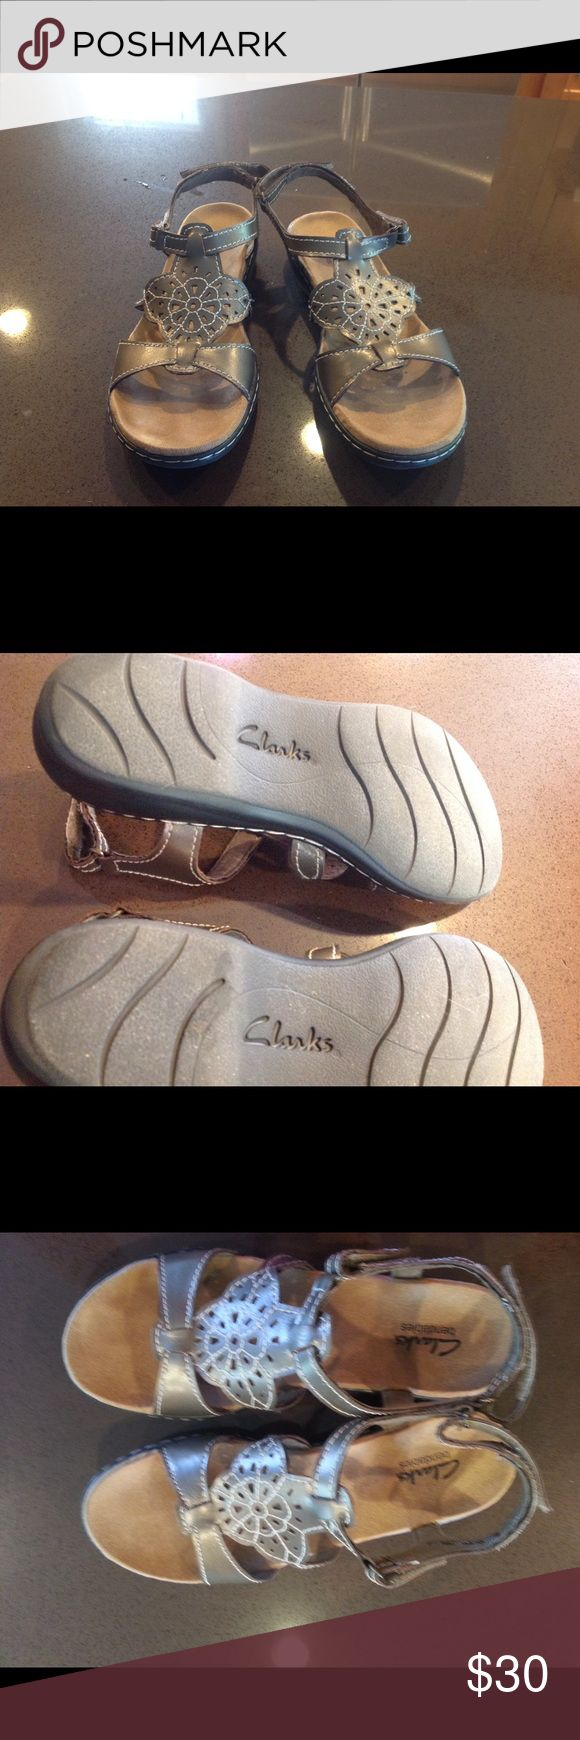 Clark shoe Used and mint condition. The size is 8.5 N. I am selling because it's small for me. Clark Shoes Sandals